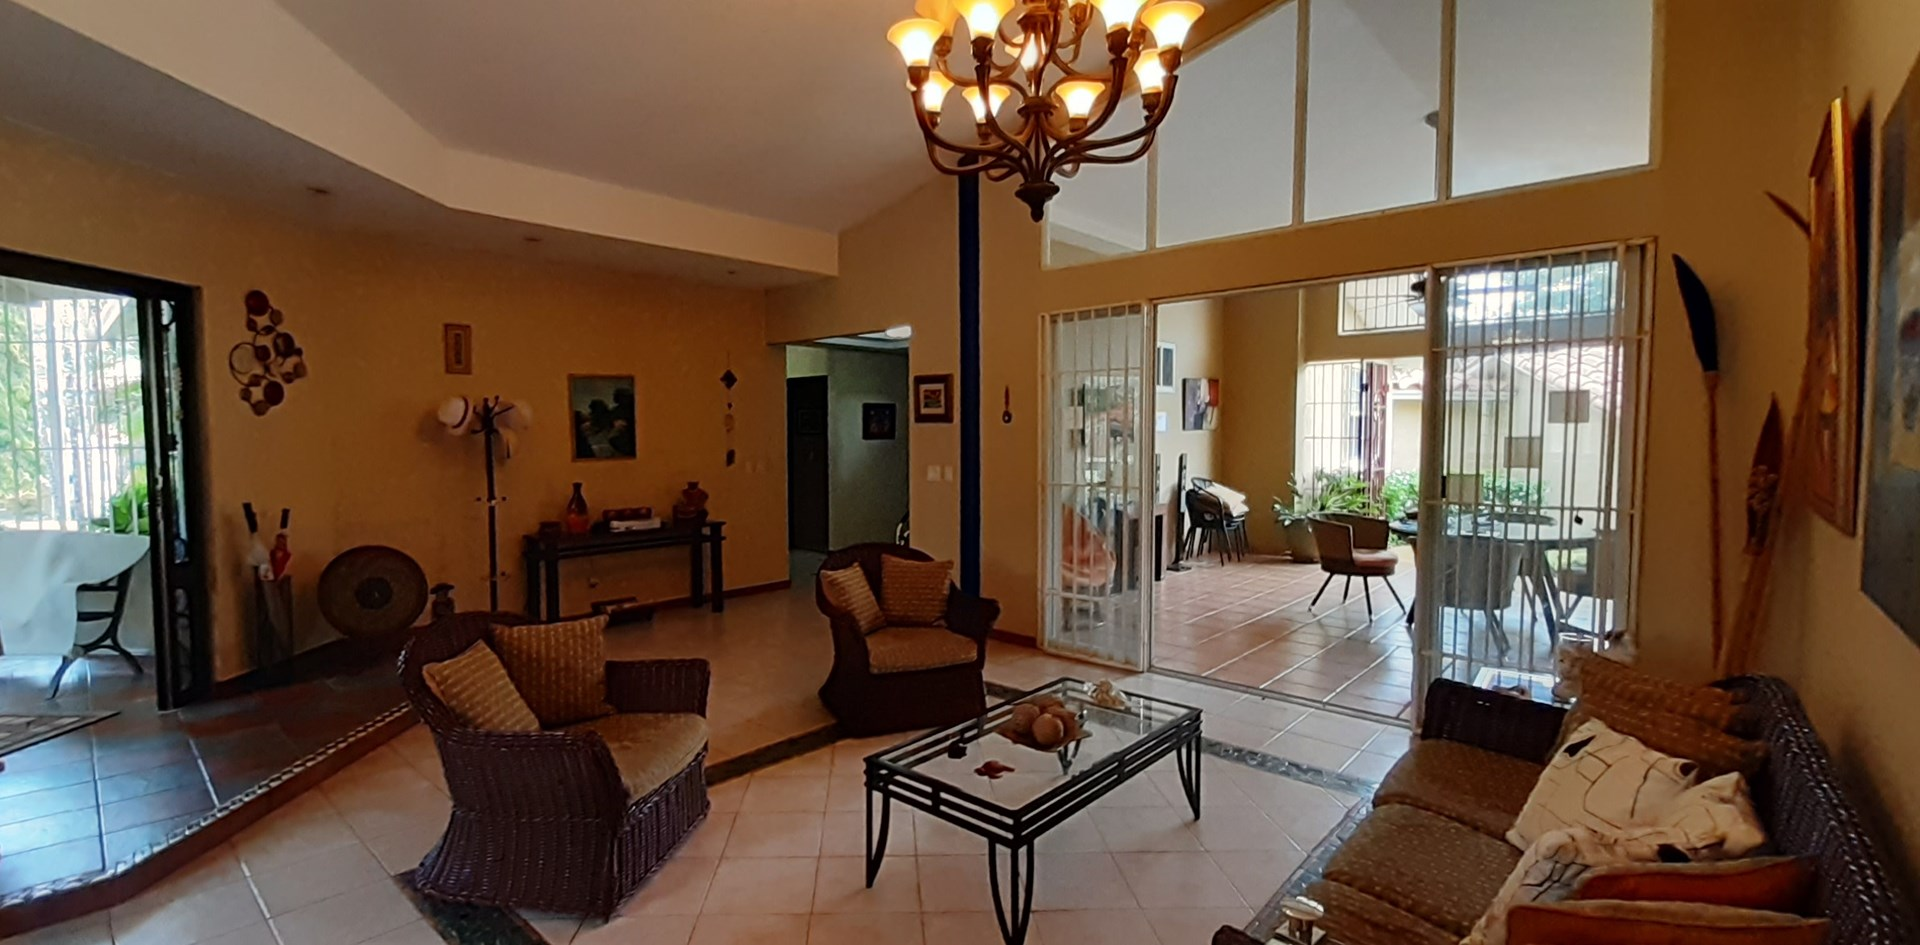 BEACH HOUSE WITH GUEST HOUSE FOR SALE OR RENT CORONADO